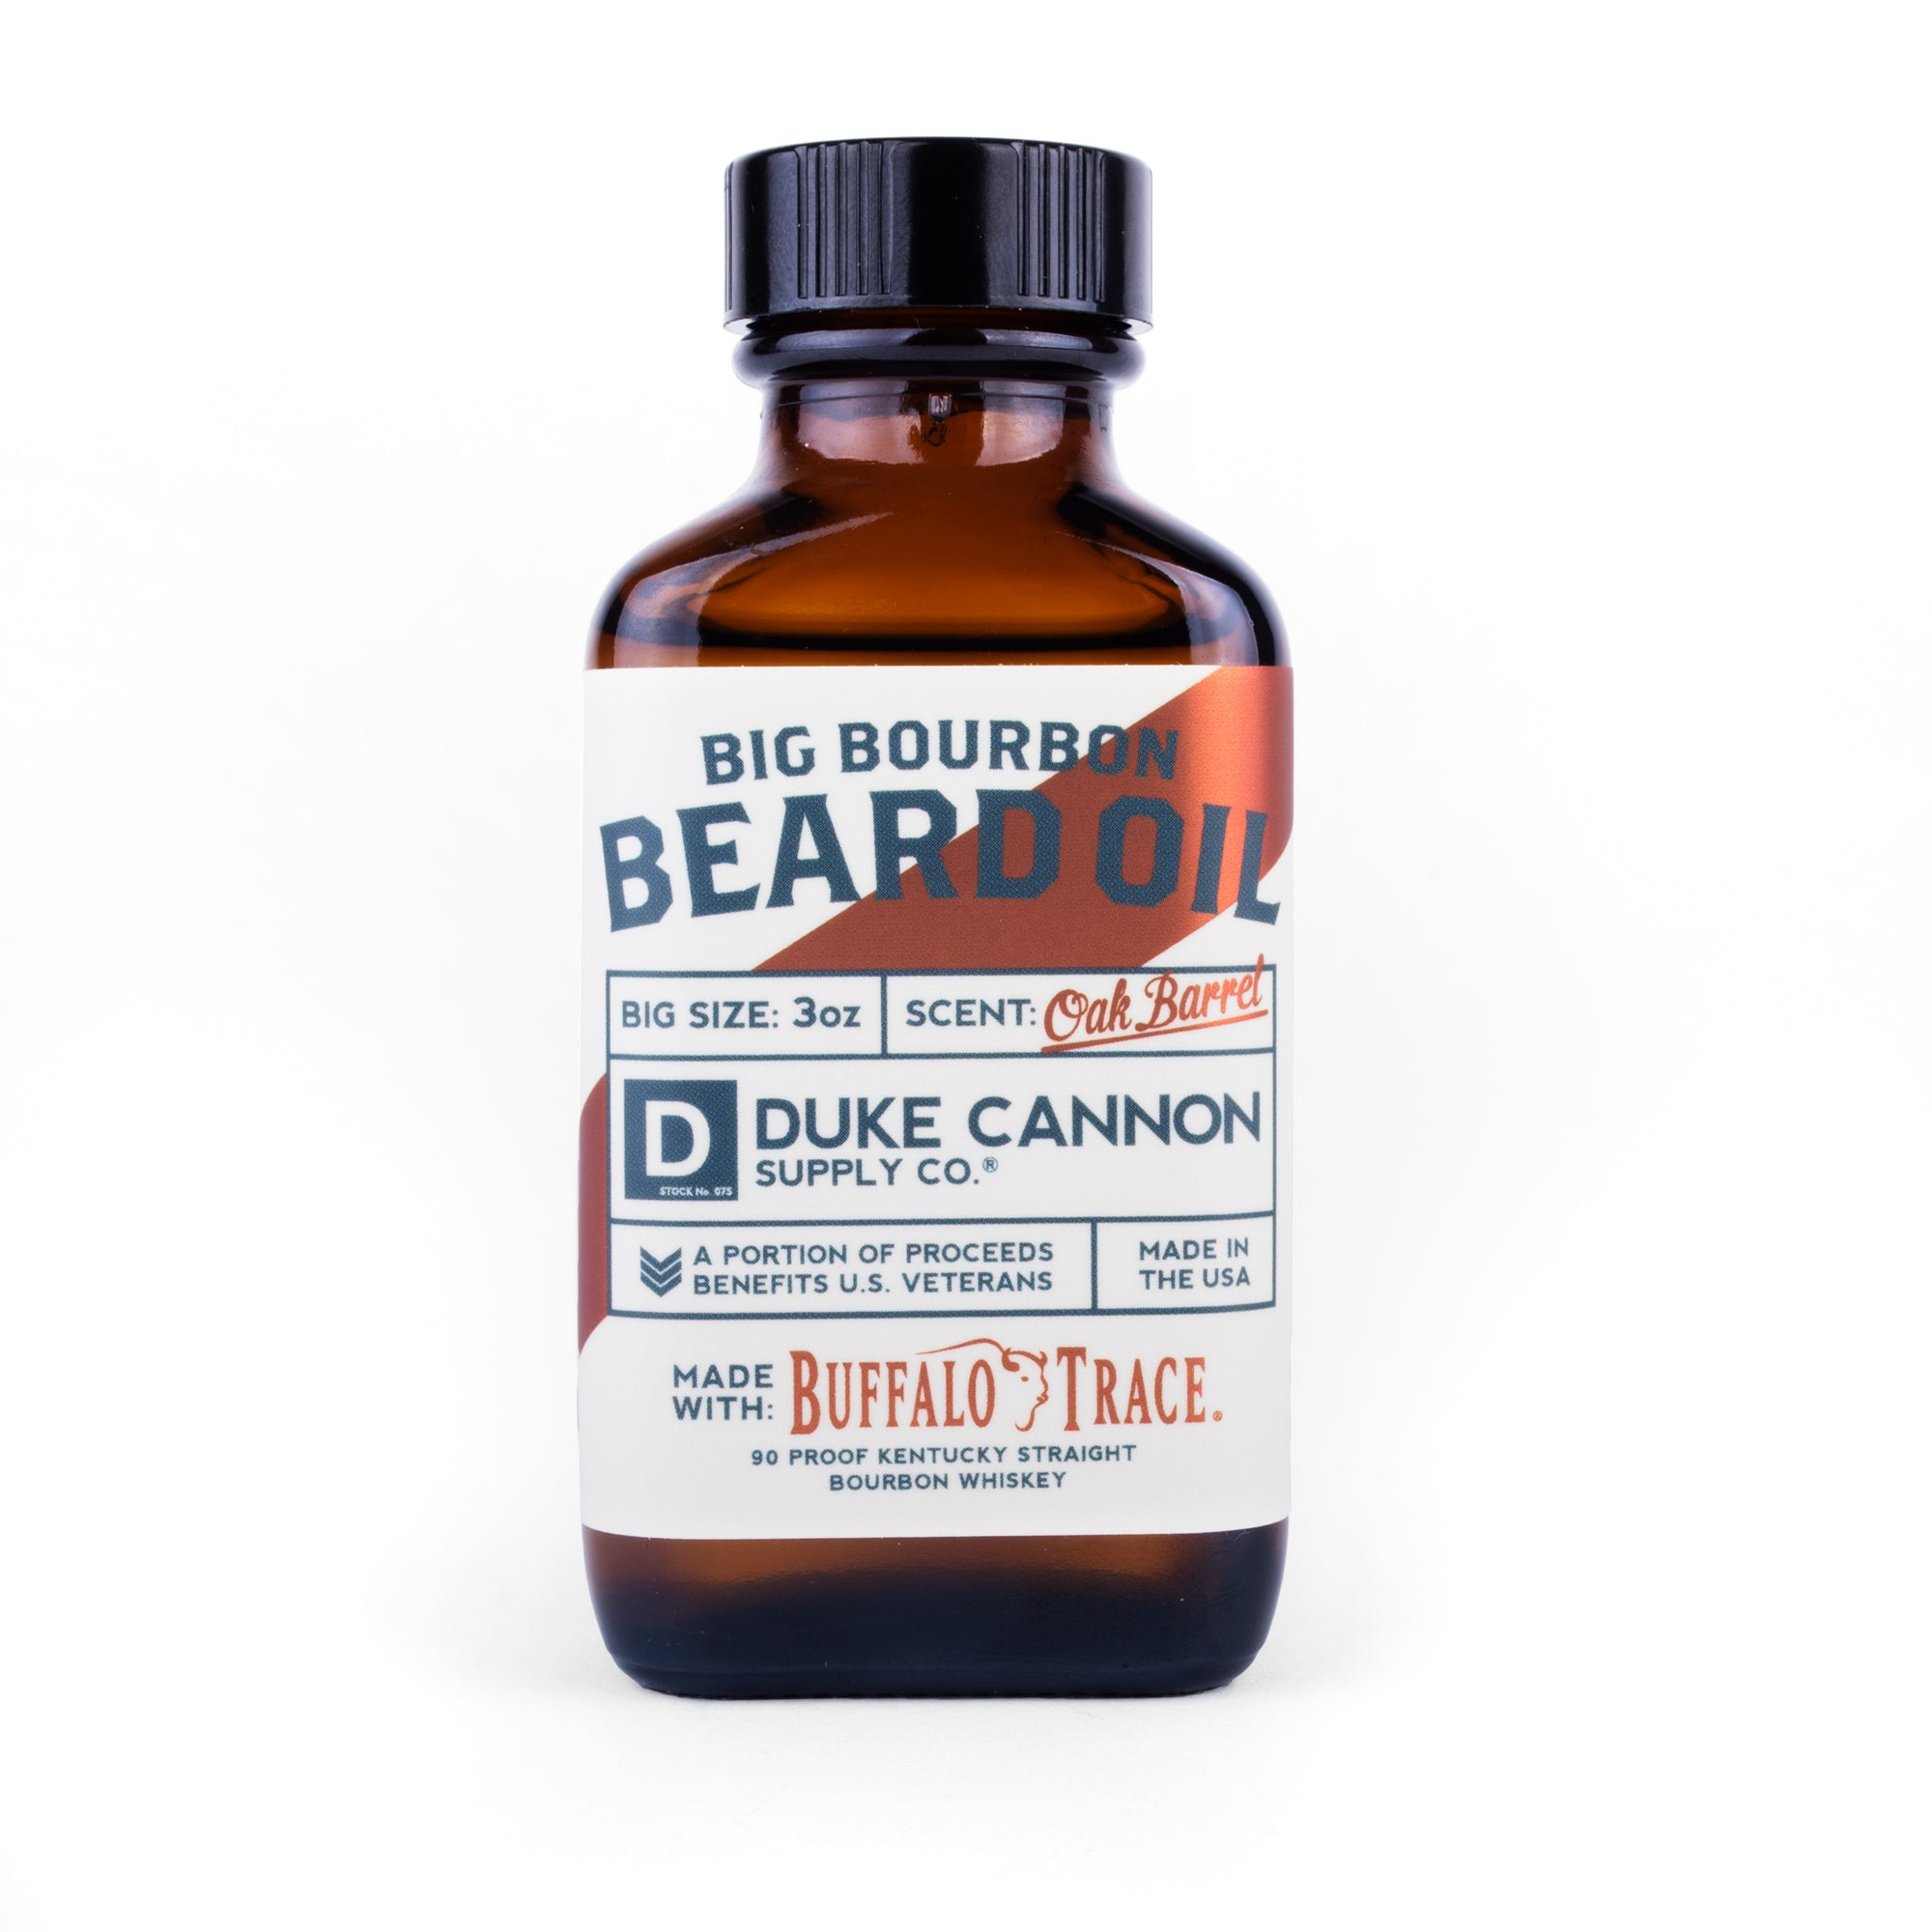 Big Bourbon Beard Oil - Duke Cannon